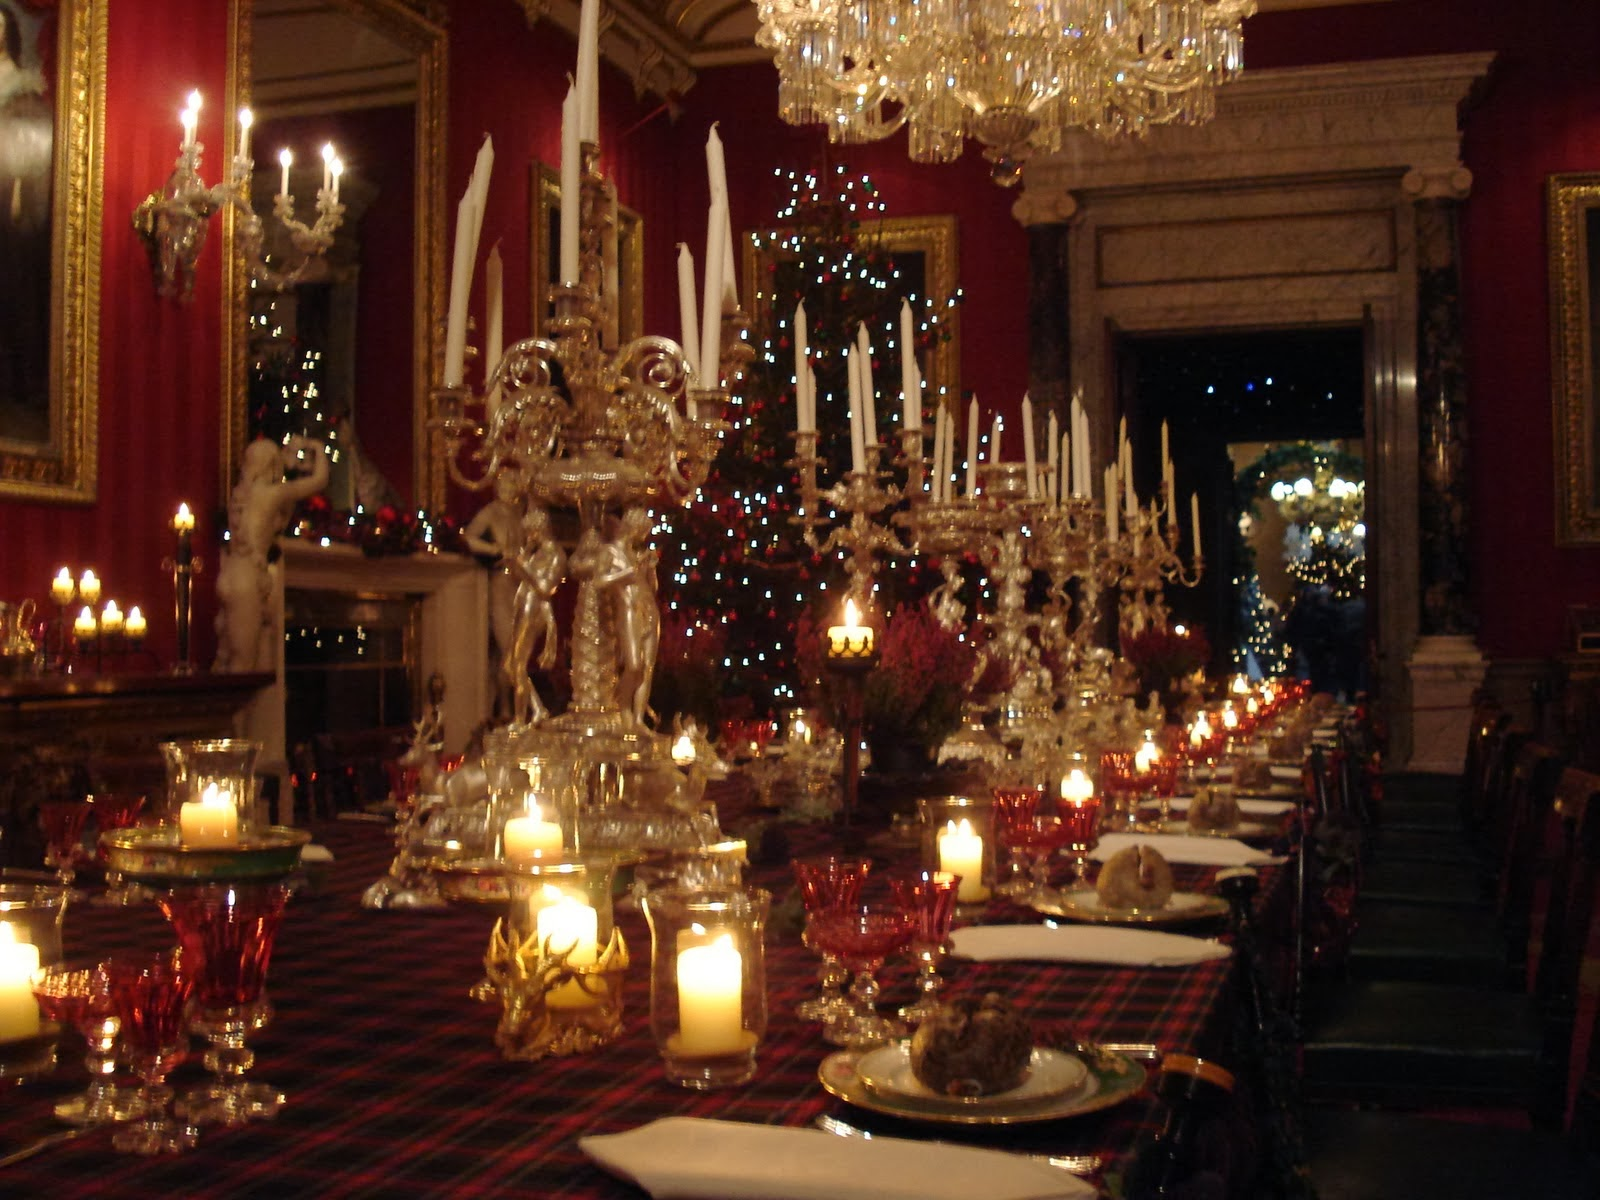 Chatsworth House Dining Table With Holiday Decor